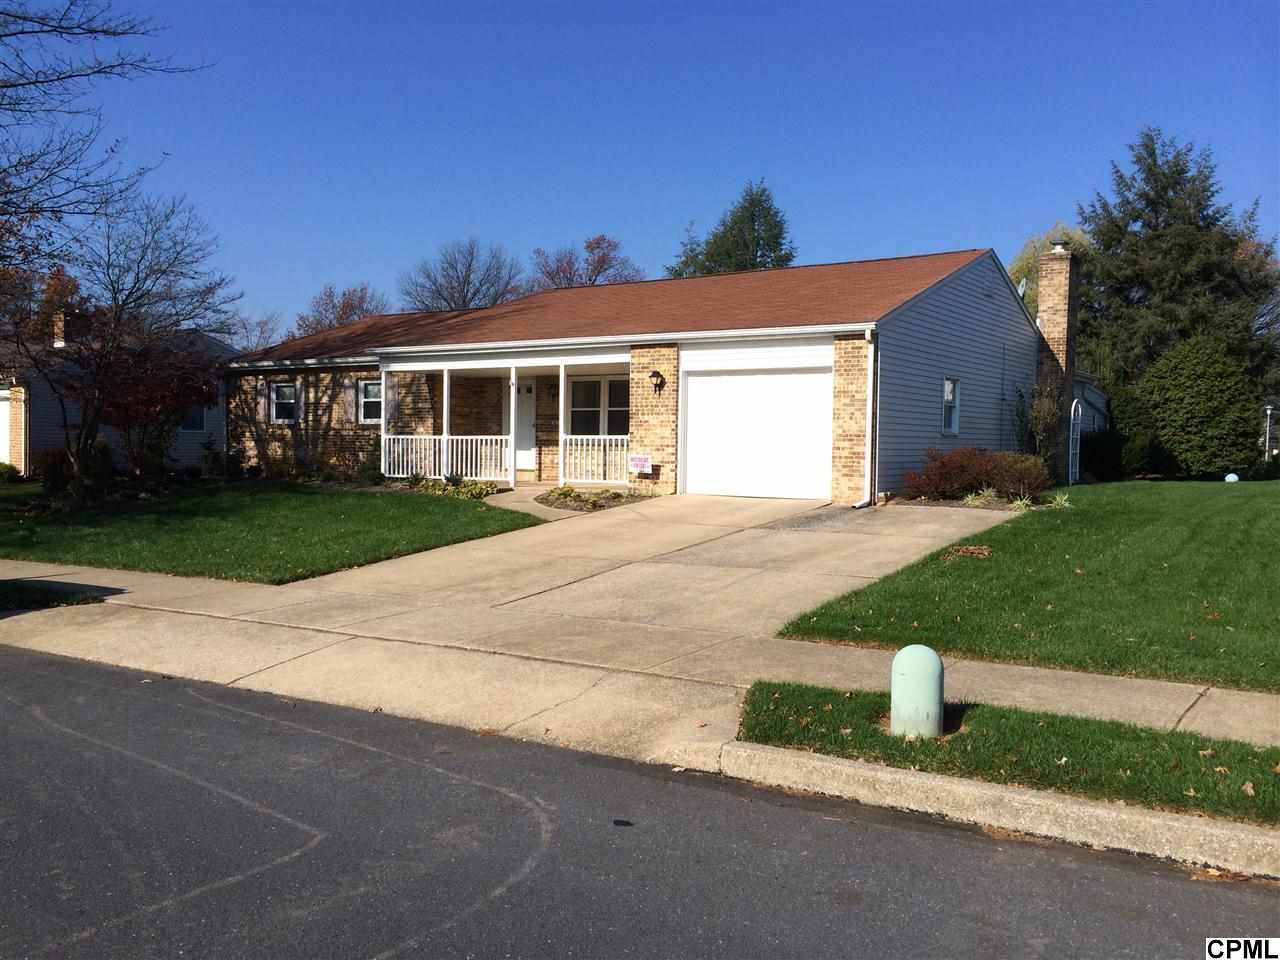 Rental Homes for Rent, ListingId:30634576, location: 605 Cocklin Mechanicsburg 17055